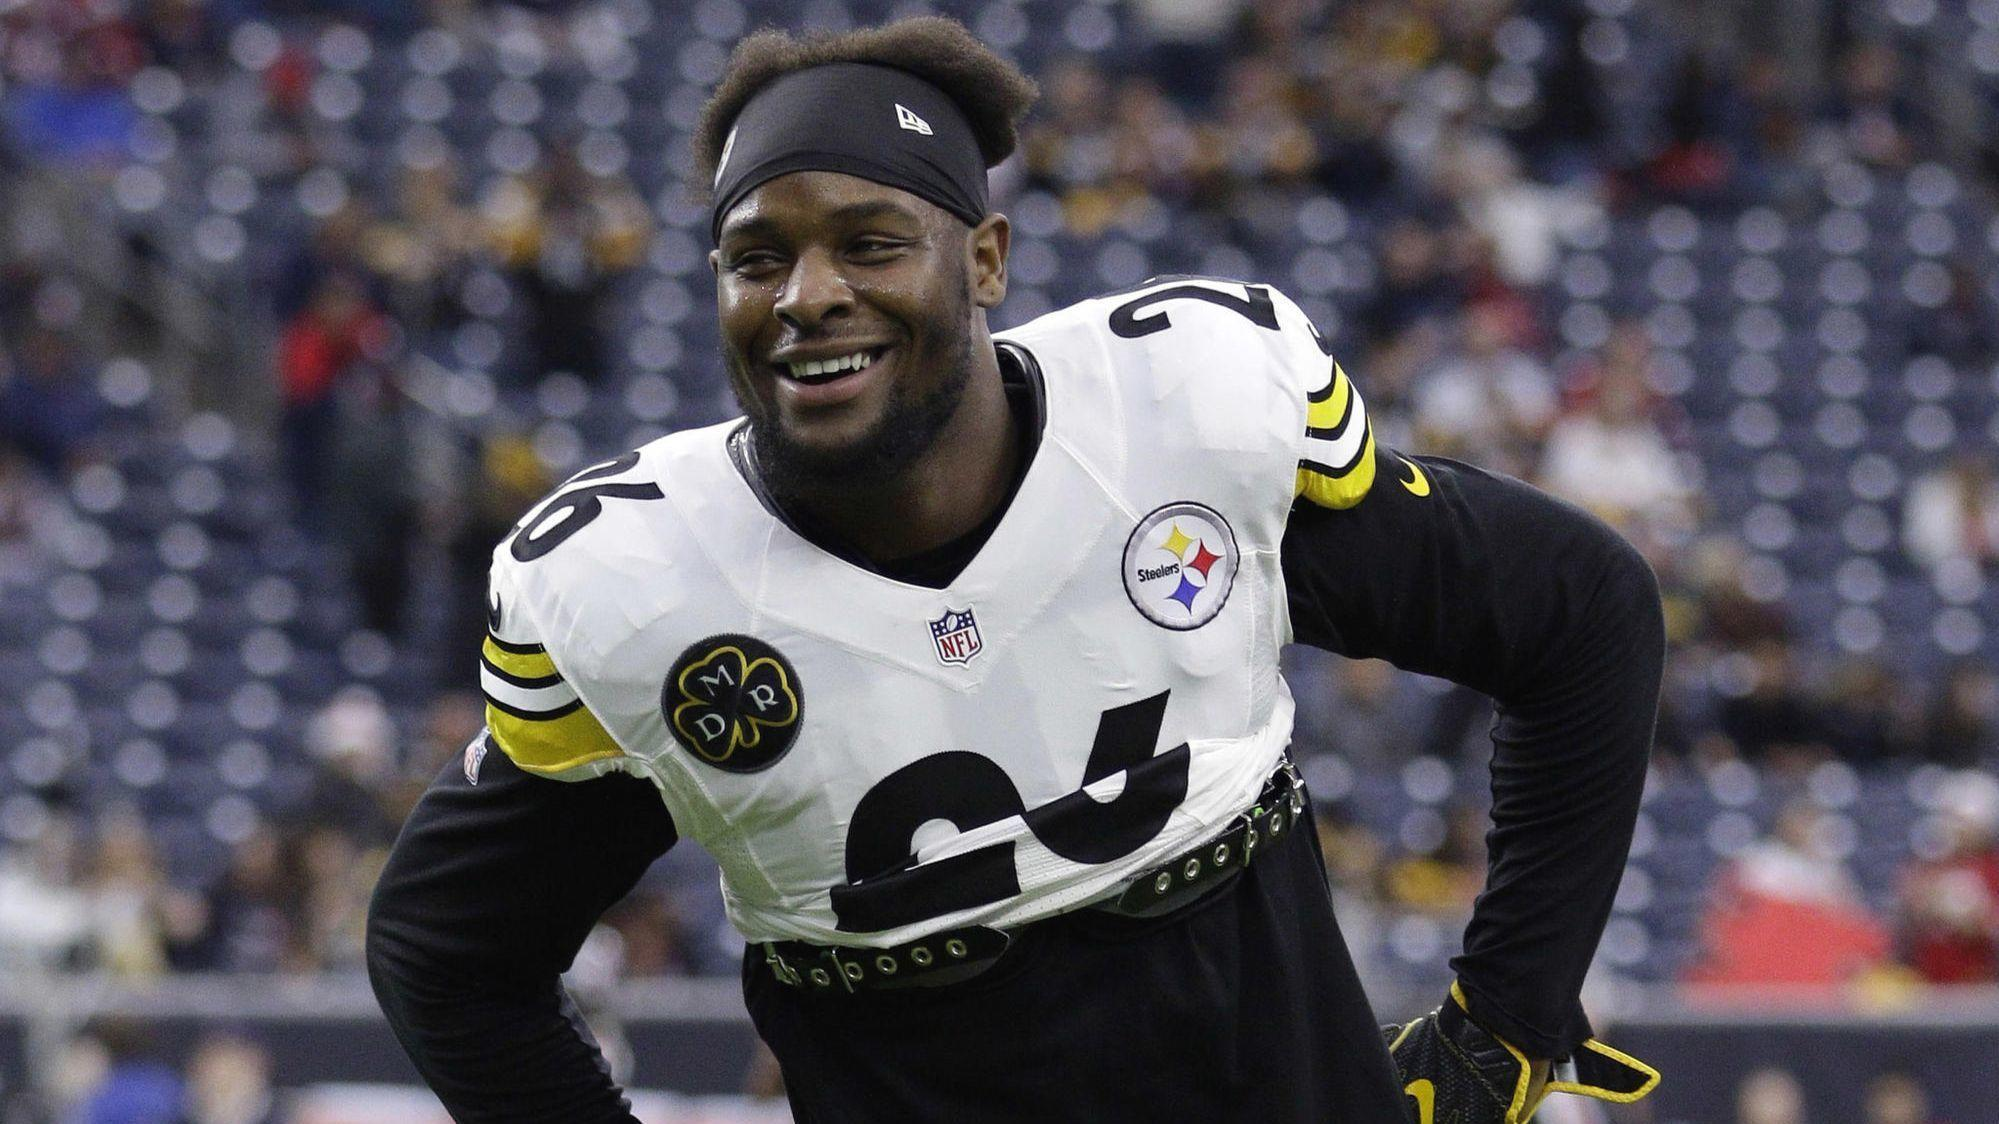 NFL: Steelers running back Le'Veon Bell refuses to sign tag, out for 2018